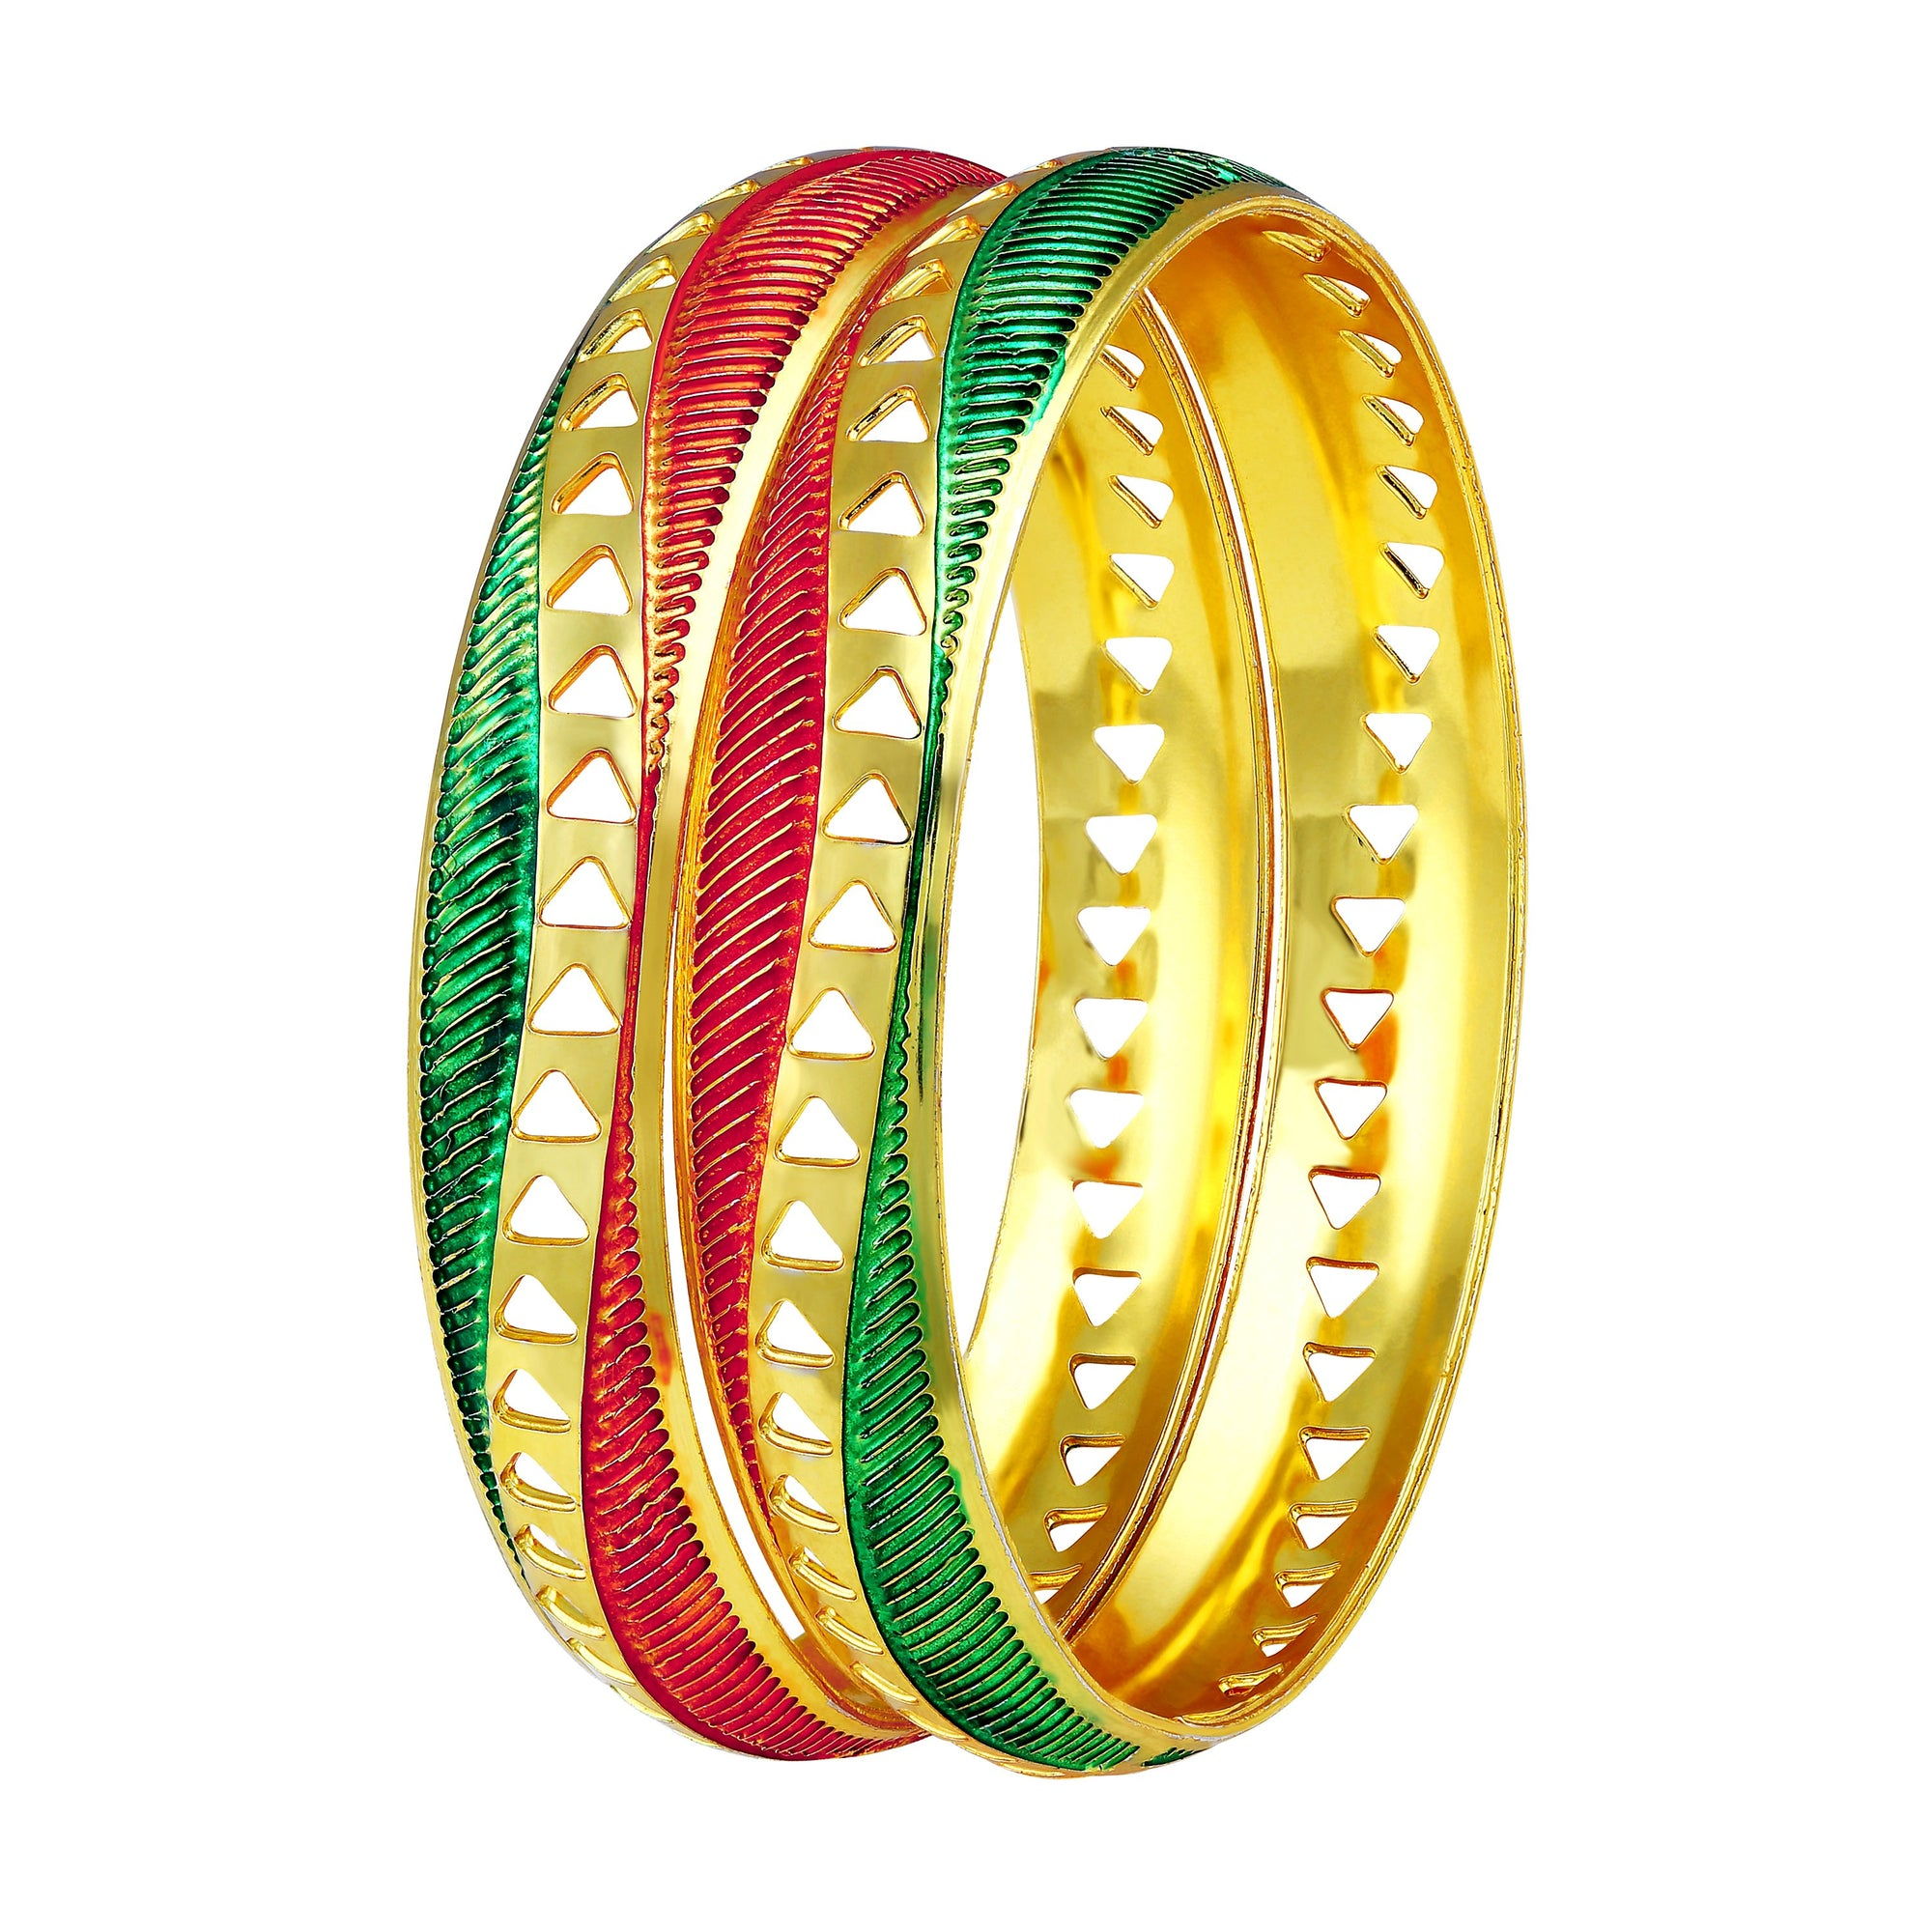 Asmitta Jewellery Gold Enamel Bangle  -BG170